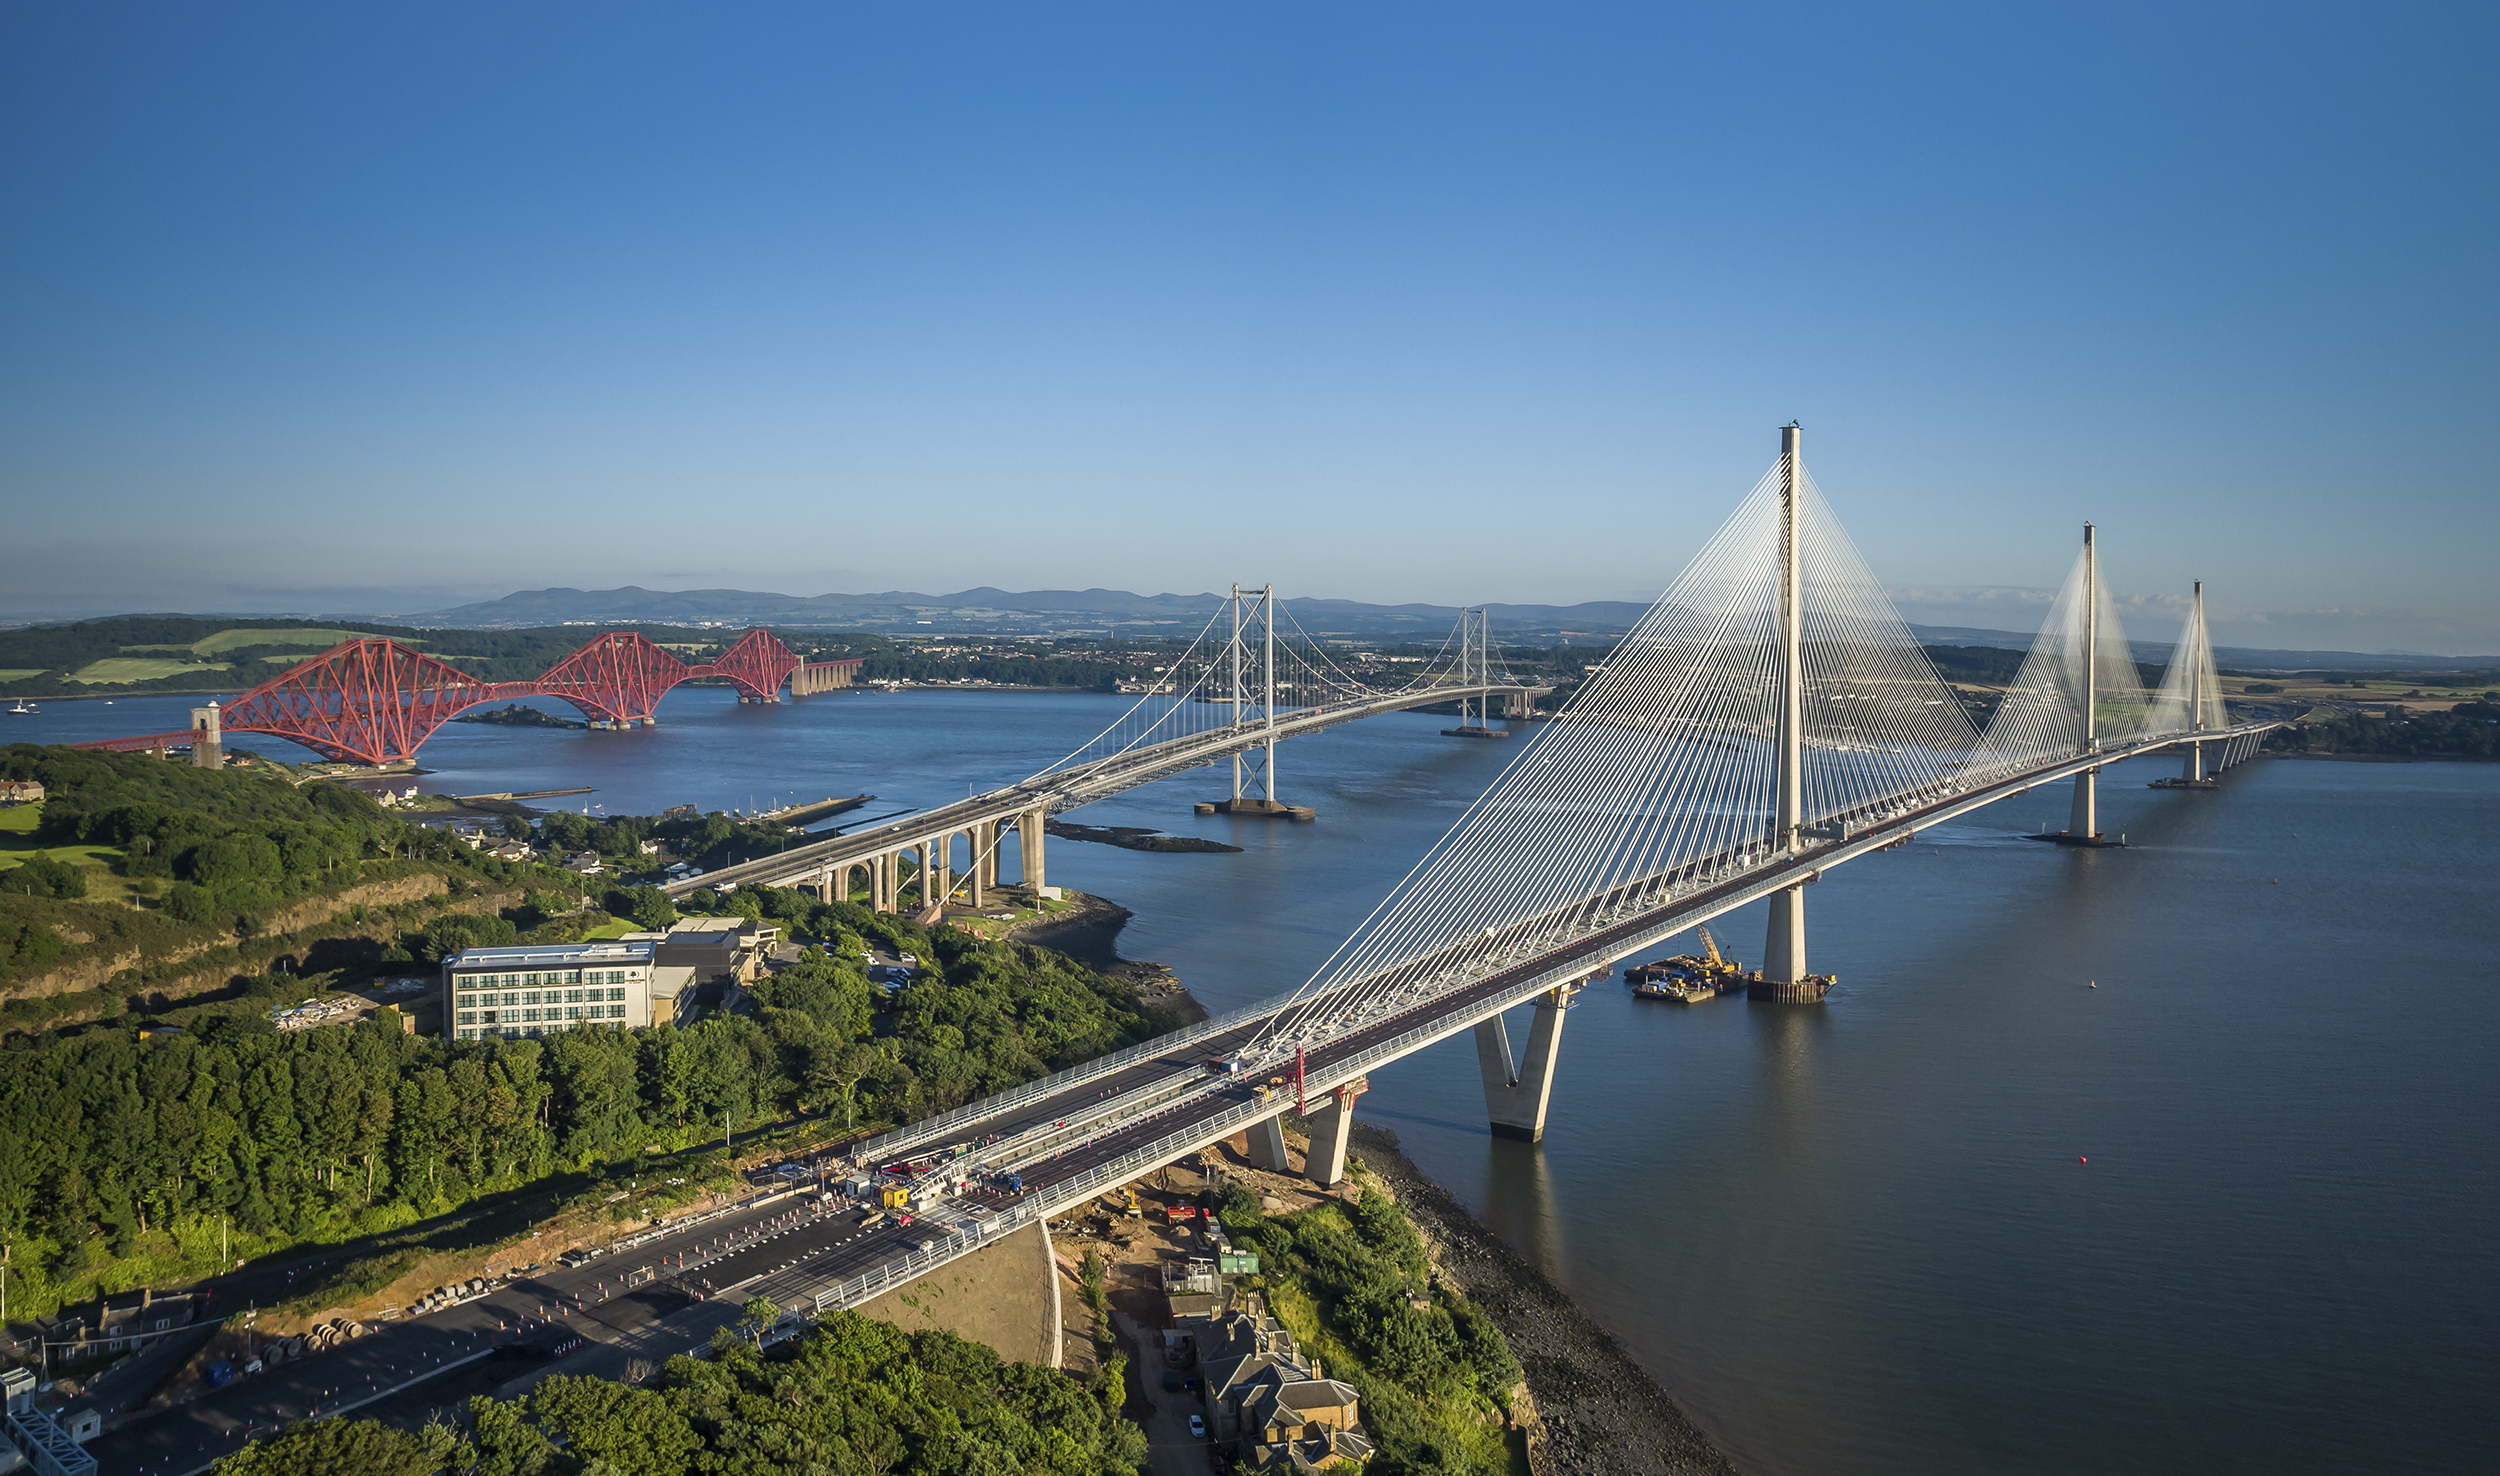 Dissing_Weitling_Queensferry_Crossing_Visit_Scotland_04_2500.jpg